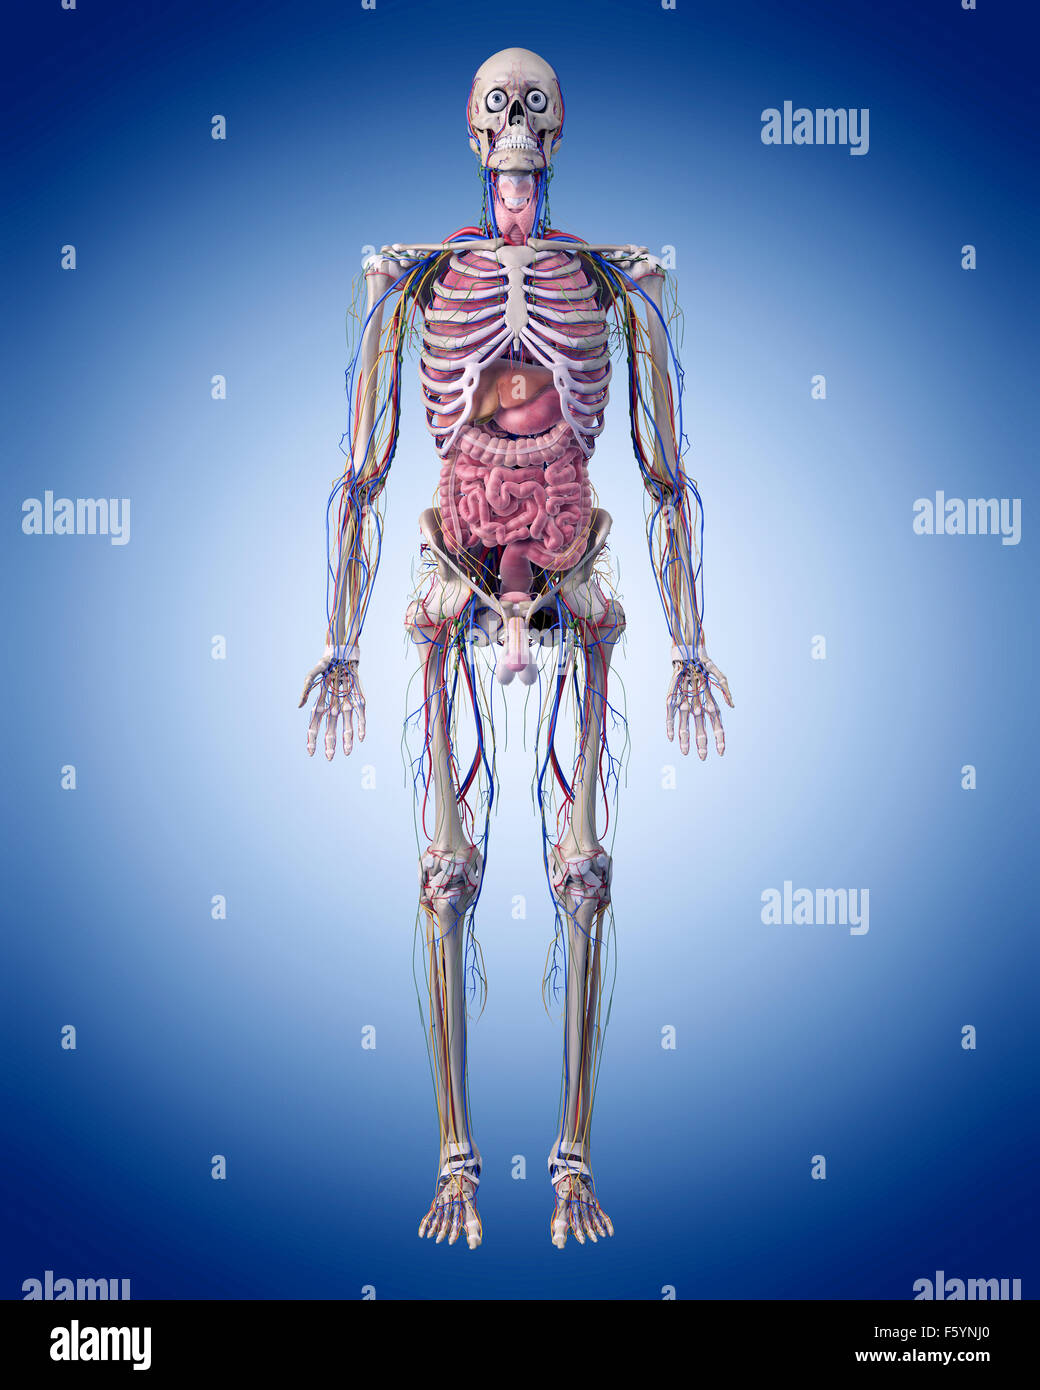 medically accurate illustration of the human anatomy - Stock Image